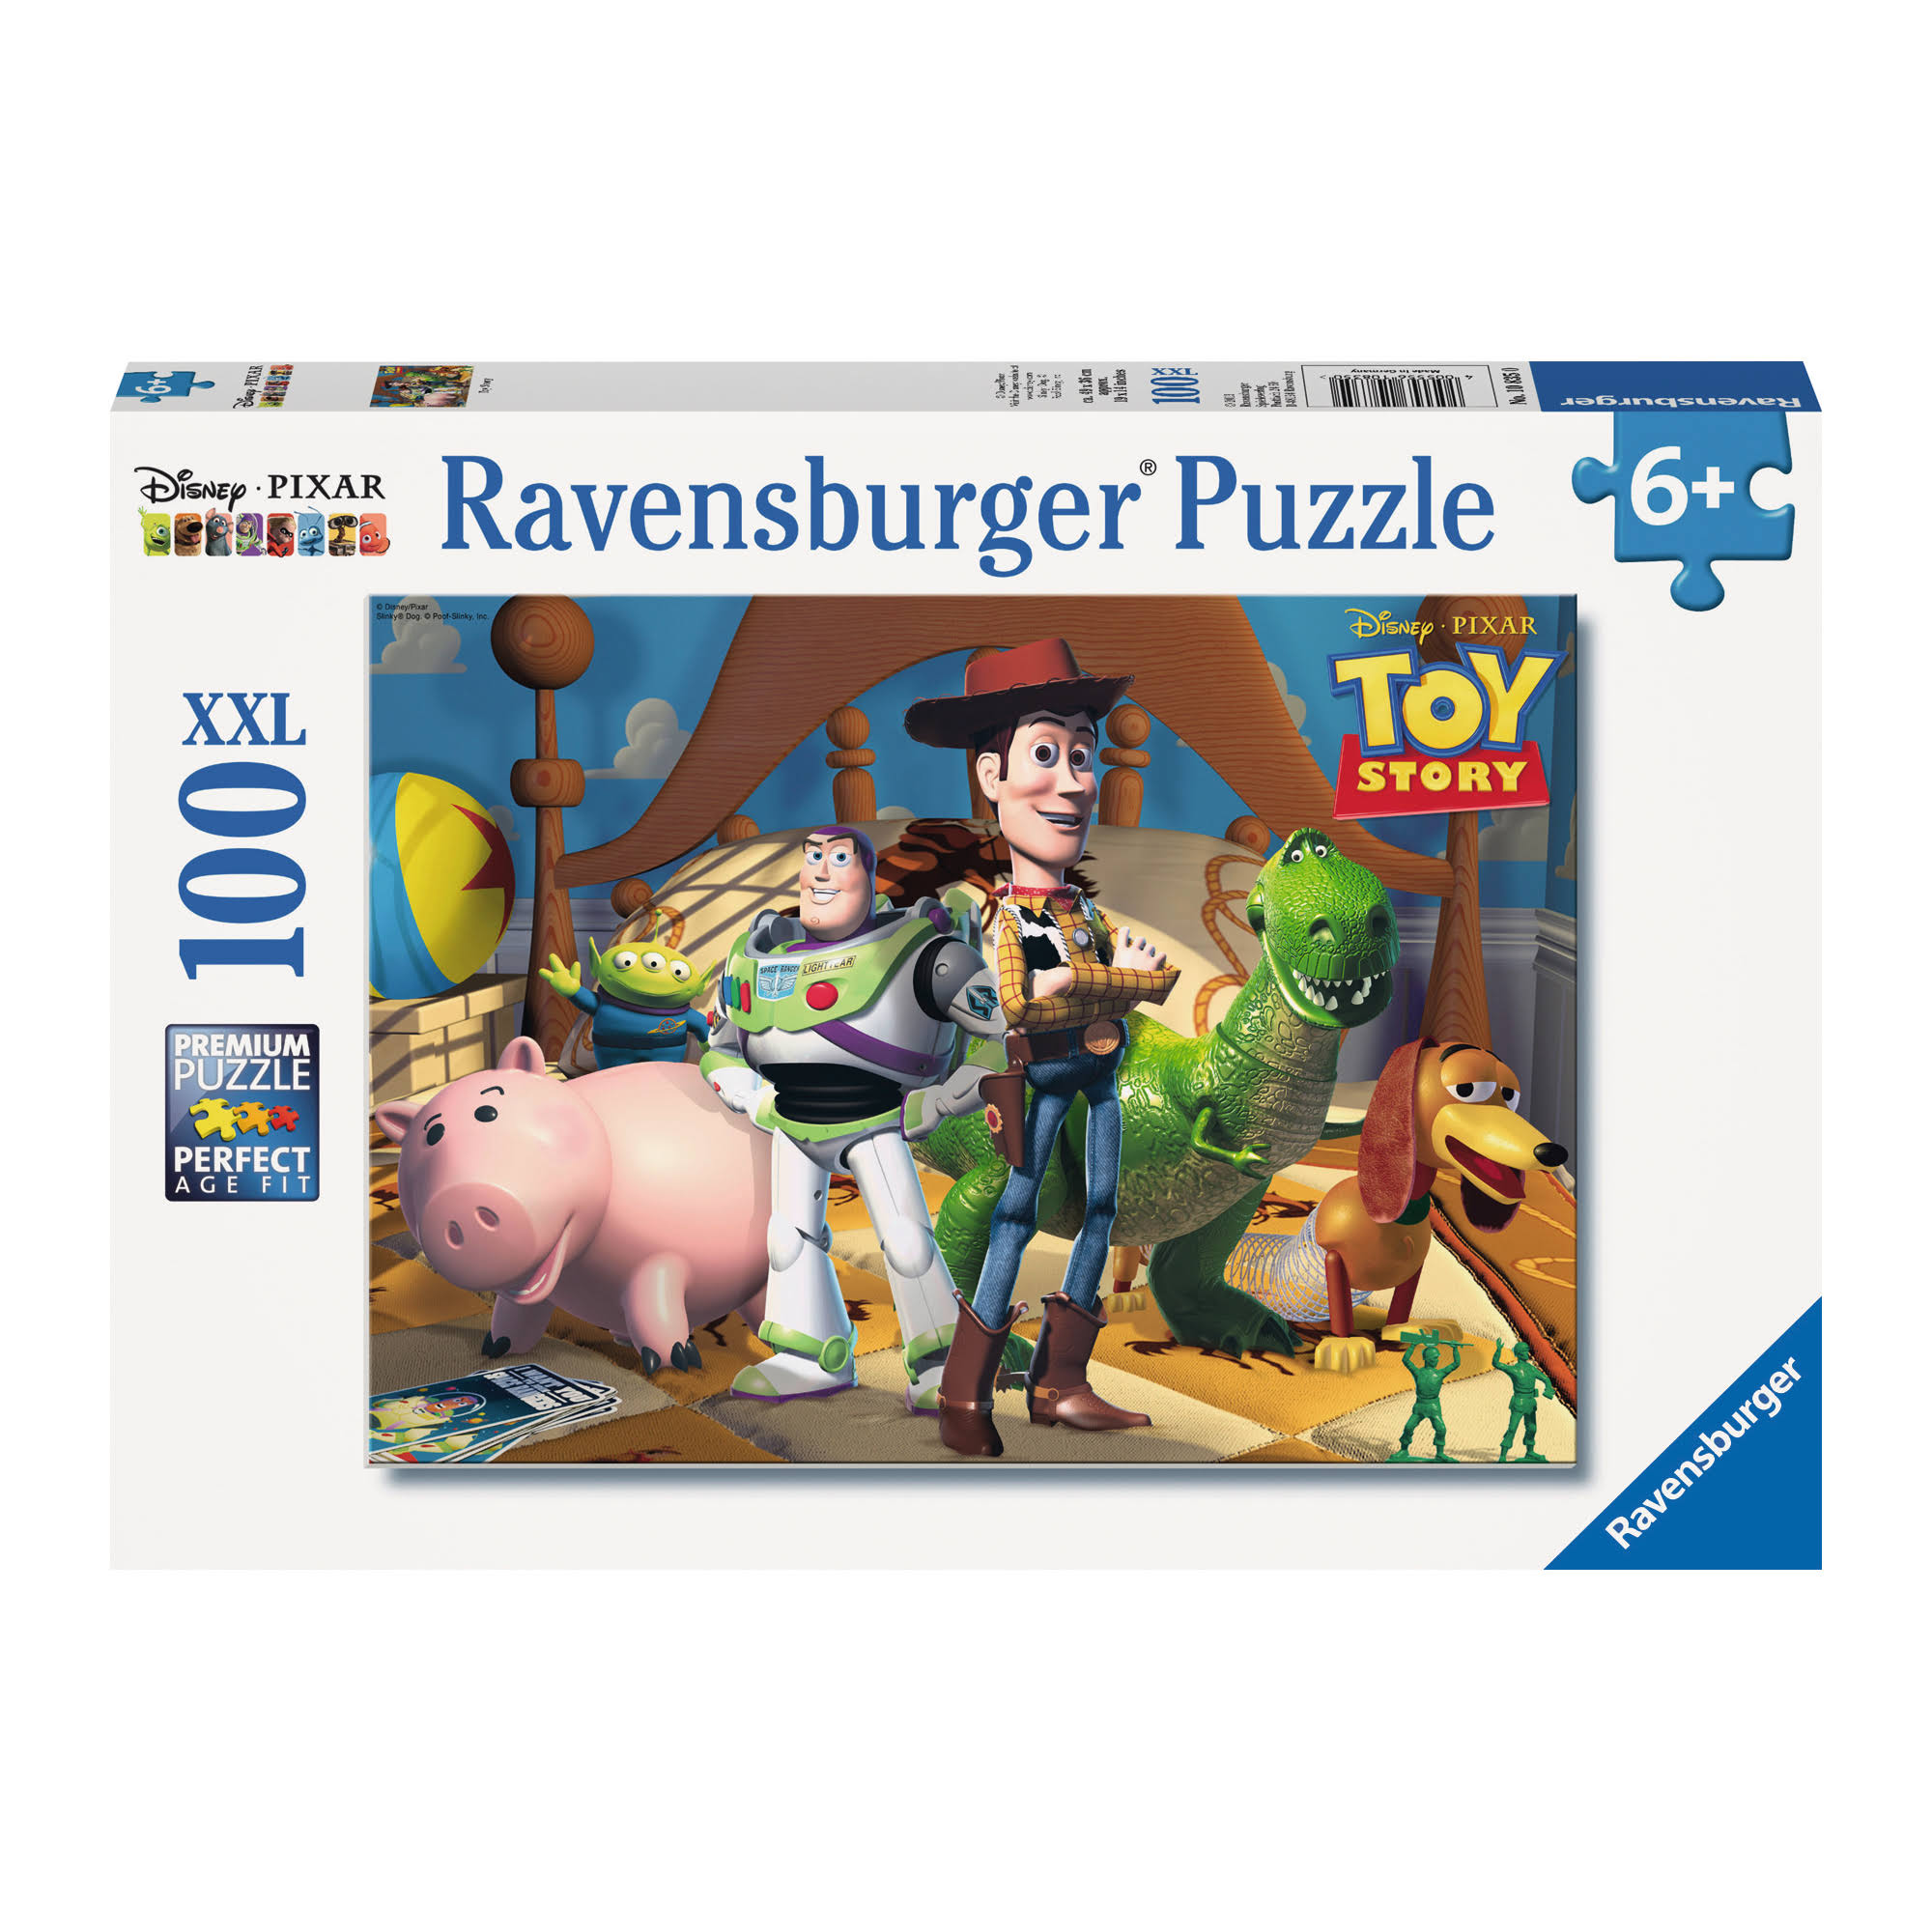 Ravensburger Disney Toy Story XXL Jigsaw Puzzle - 100pc